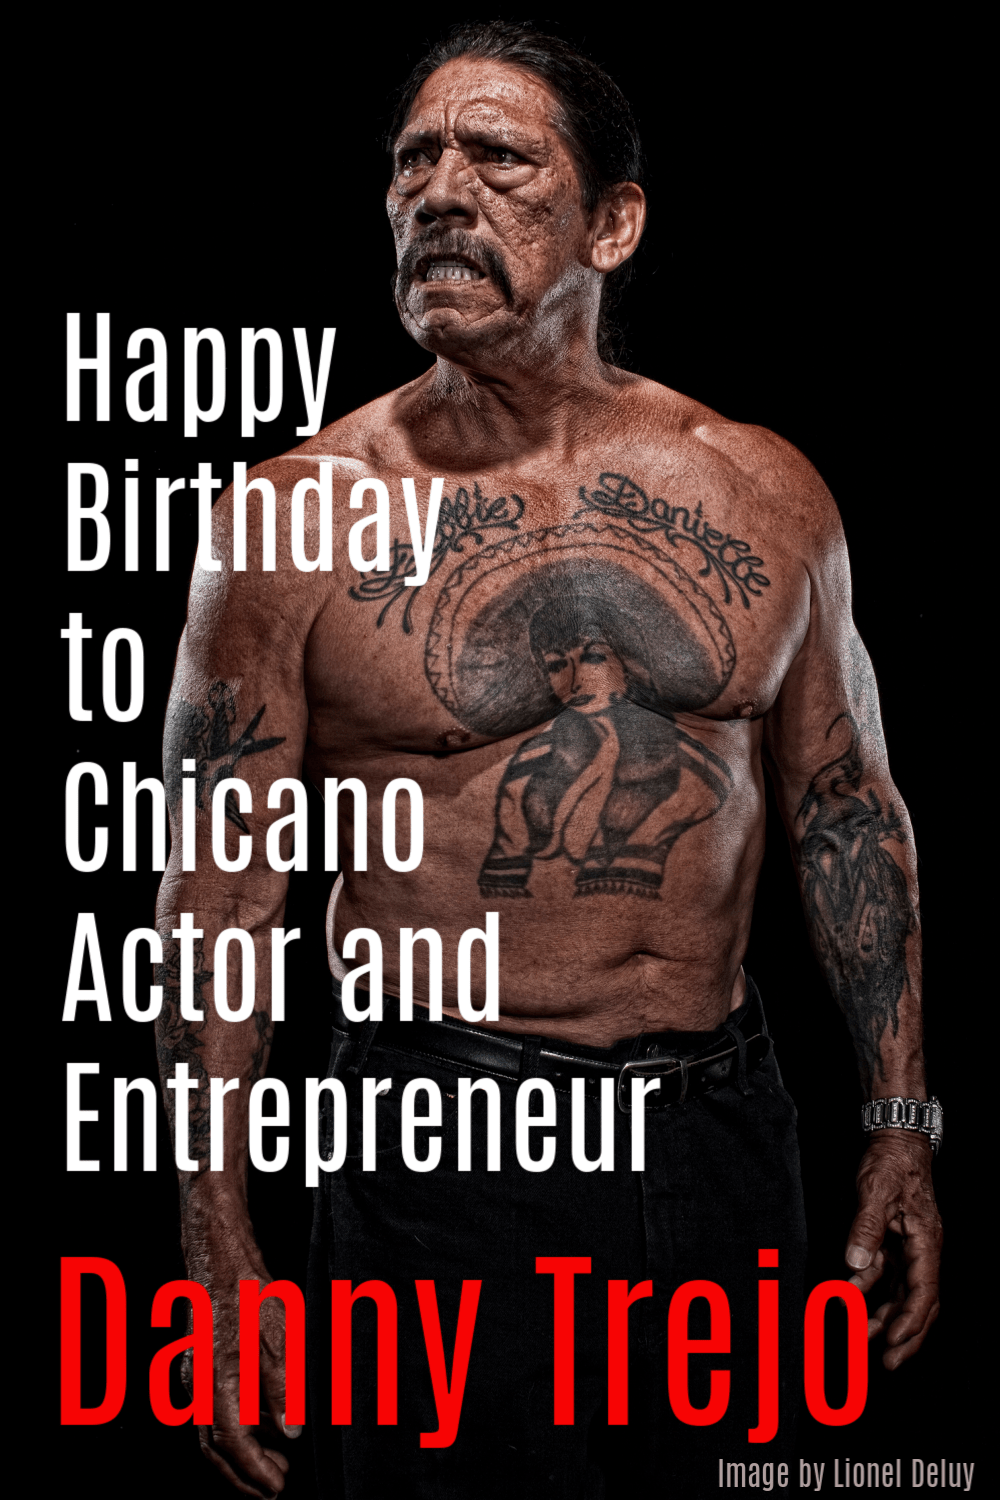 Happy Birthday to Chicano Actor and Entrepreneur Danny Trejo. Image by Lionel Deluy on Craftychica.com